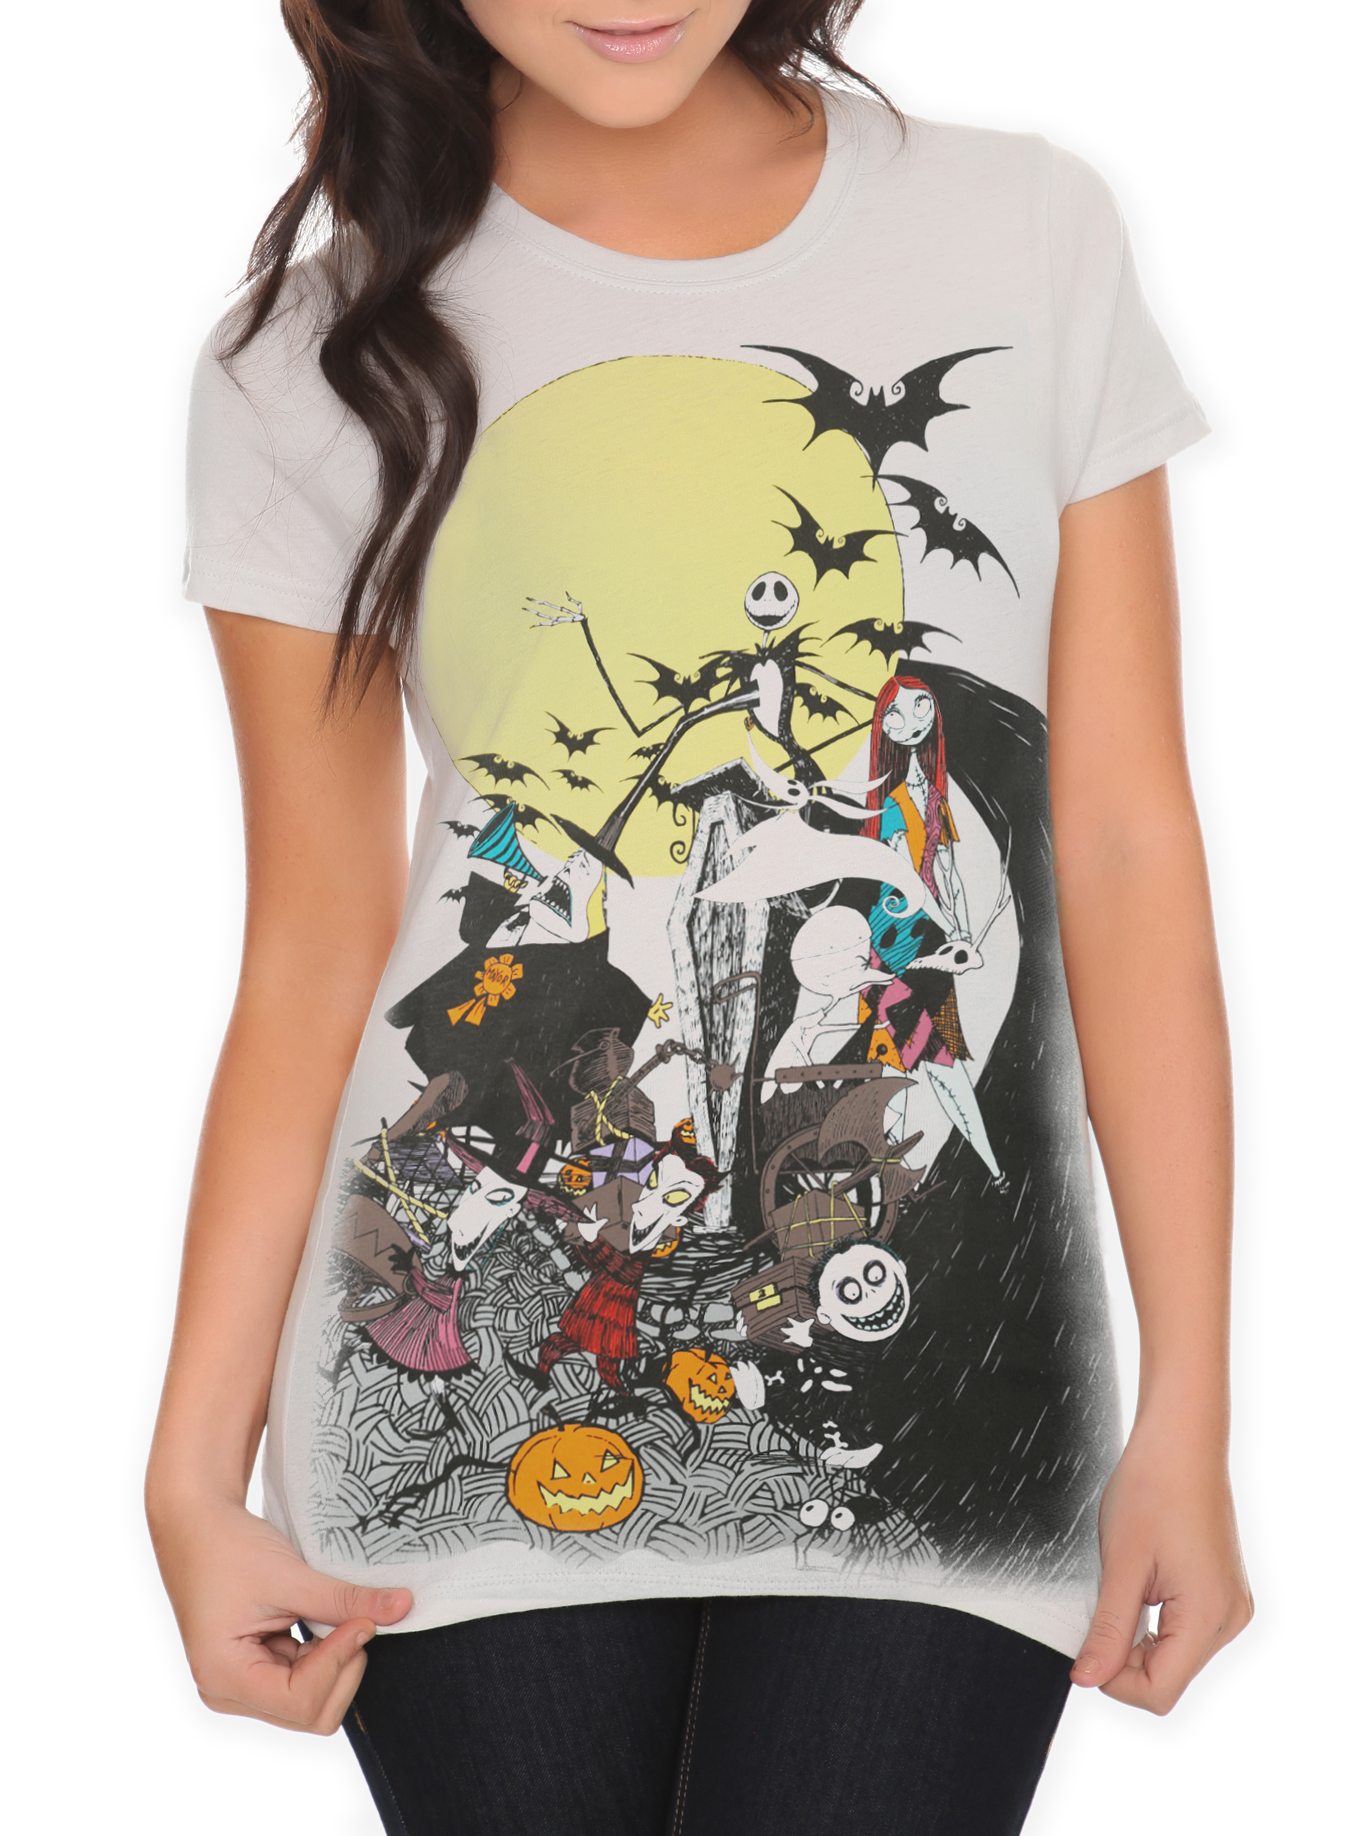 The Nightmare Before Christmas Group from Hot Topic